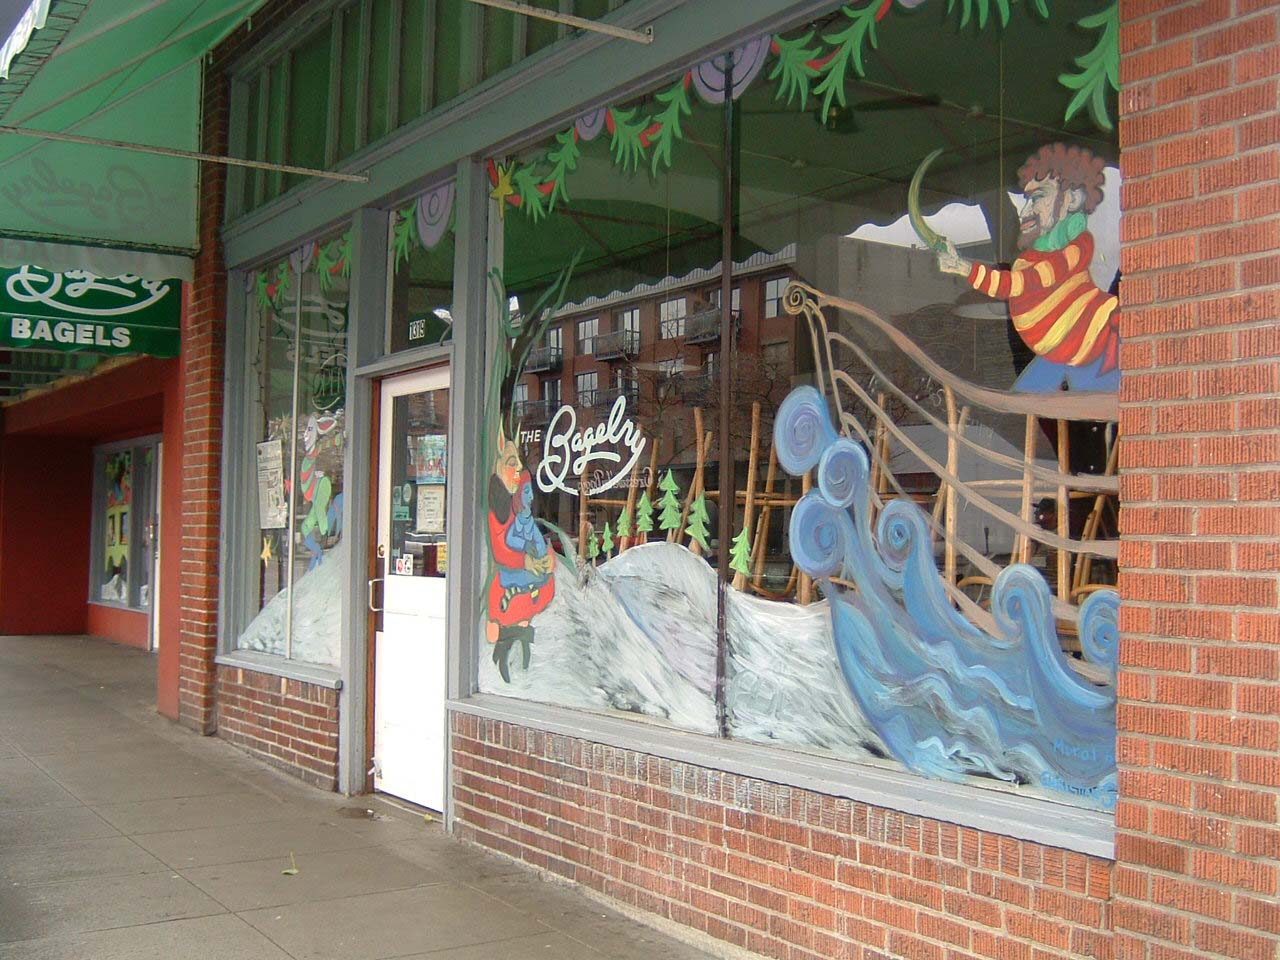 Christian Anne Smith, Surreal Bagelry Winter  Murals 3.jpg